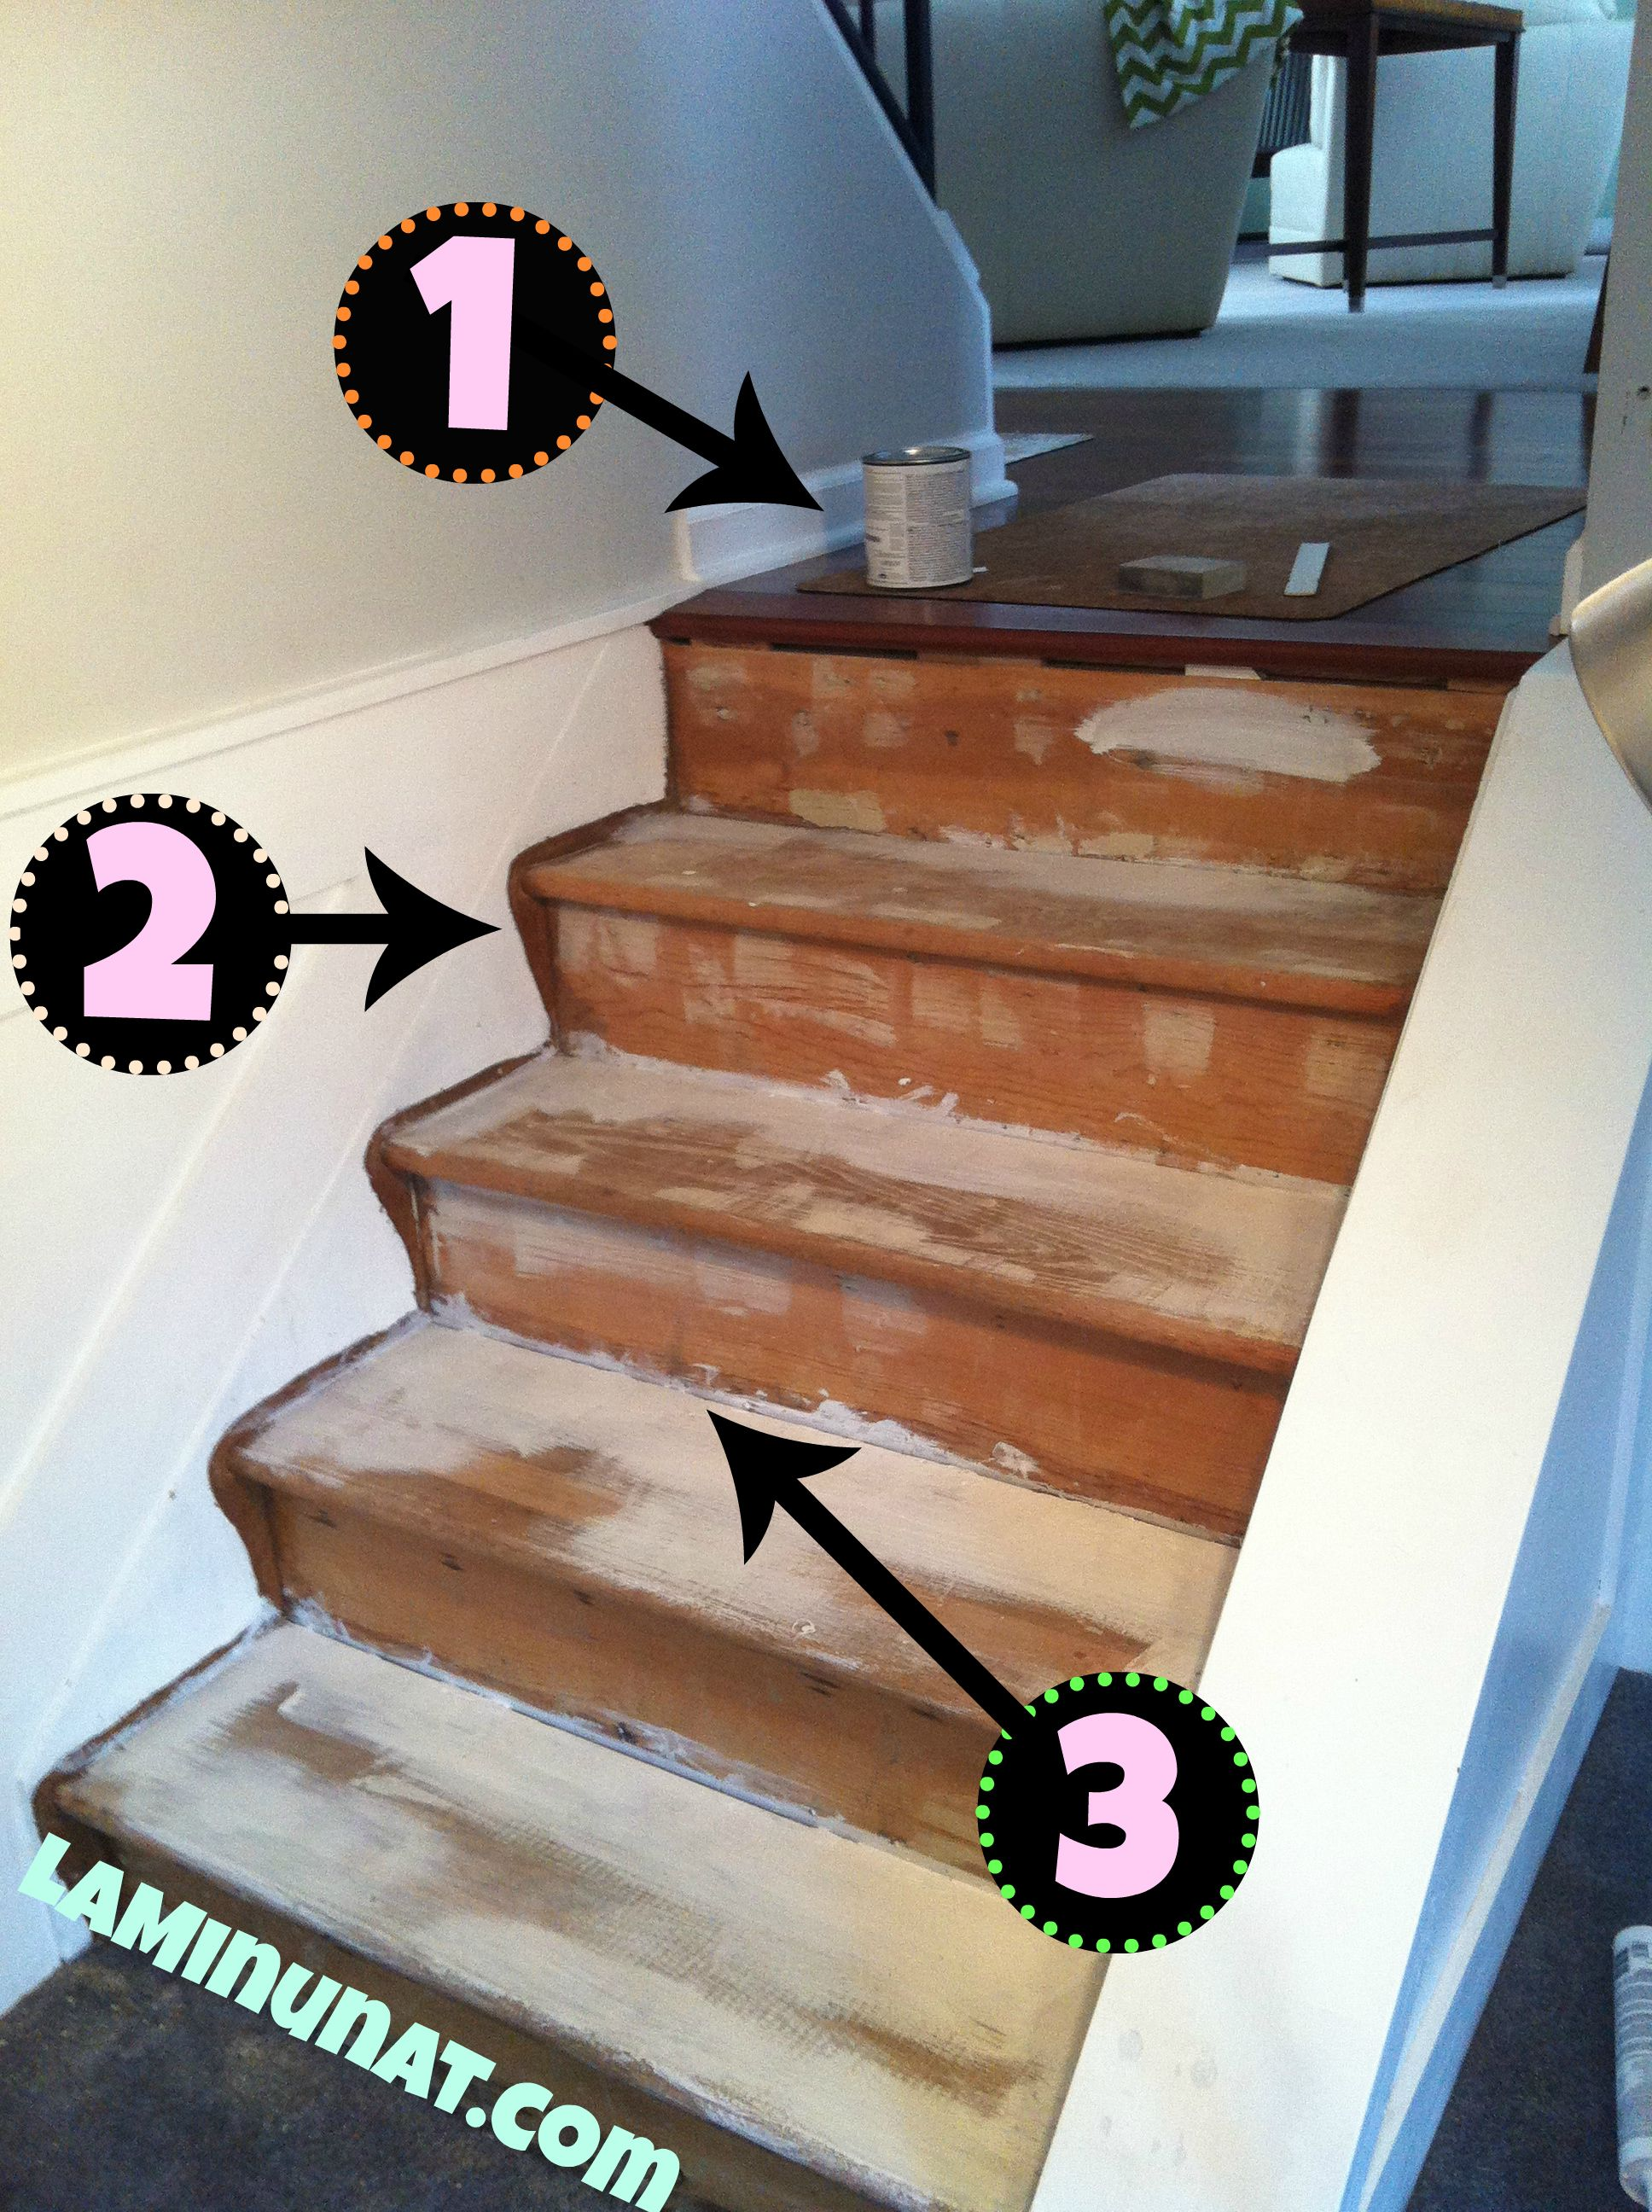 Stair Re Do Revamp Diy From Carpet To Painted Clean Step Steps Stairs White  Color Yellow Chartreuse Nails Holes Filler Primer Brush Latex Riser At Home  ...